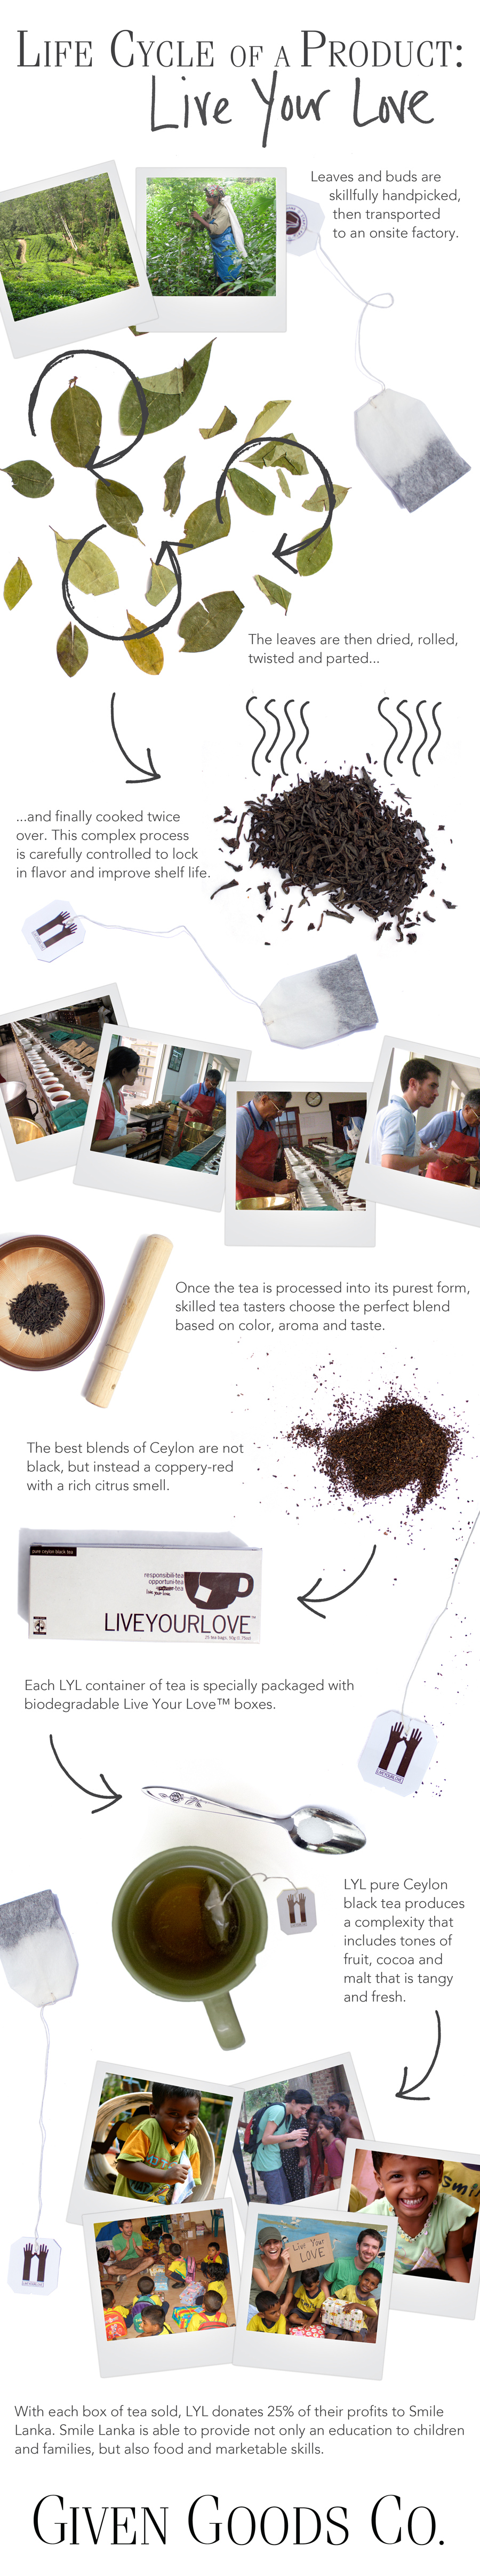 Given Goods' VERY FIRST 'Life Cycle of a Product' features the story of Live Your Love Tea.